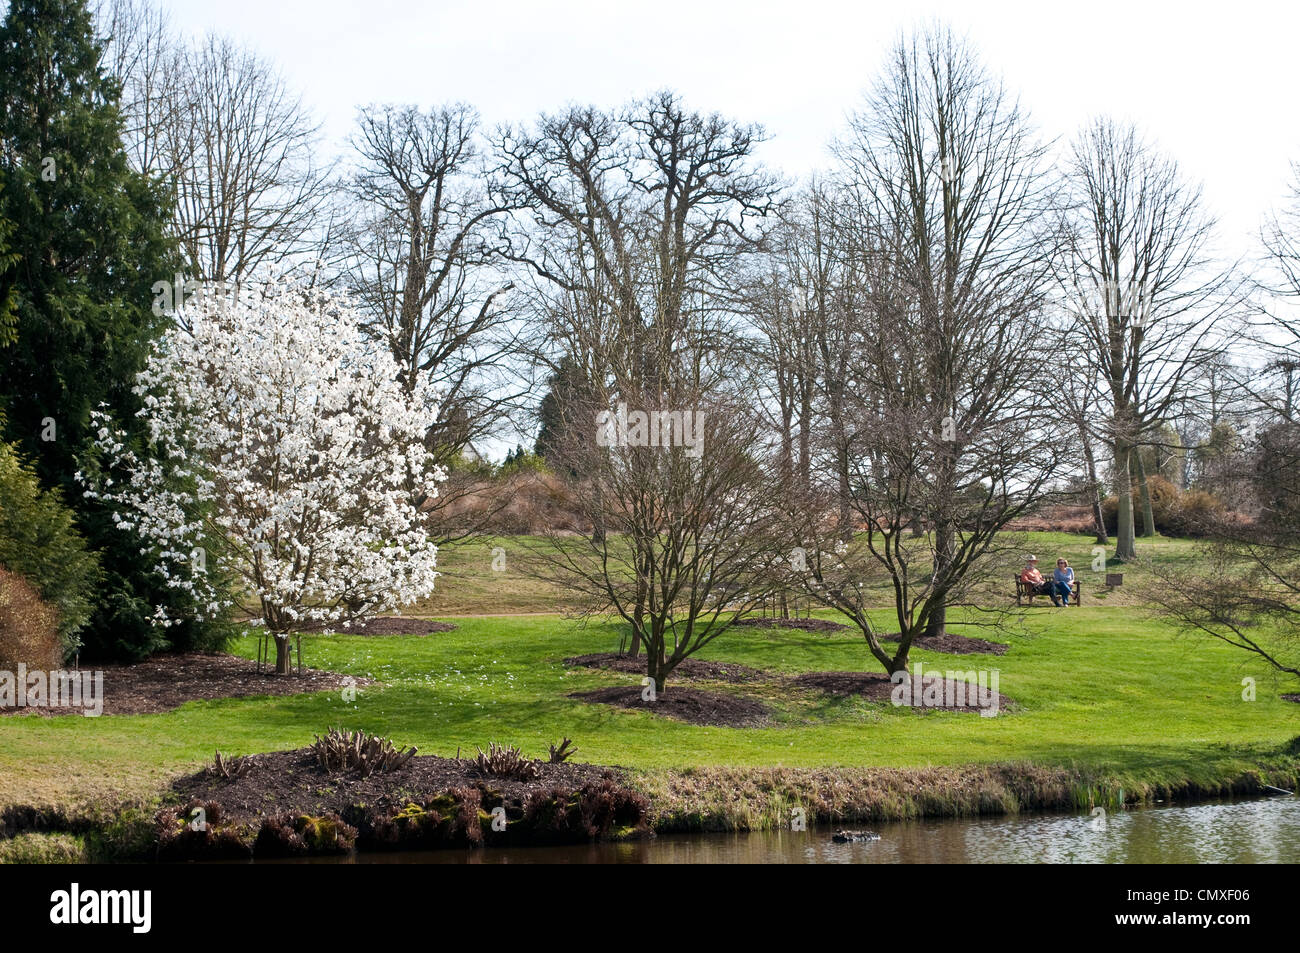 Savill Garden with two people on bench, Berkshire, England, UK - Stock Image